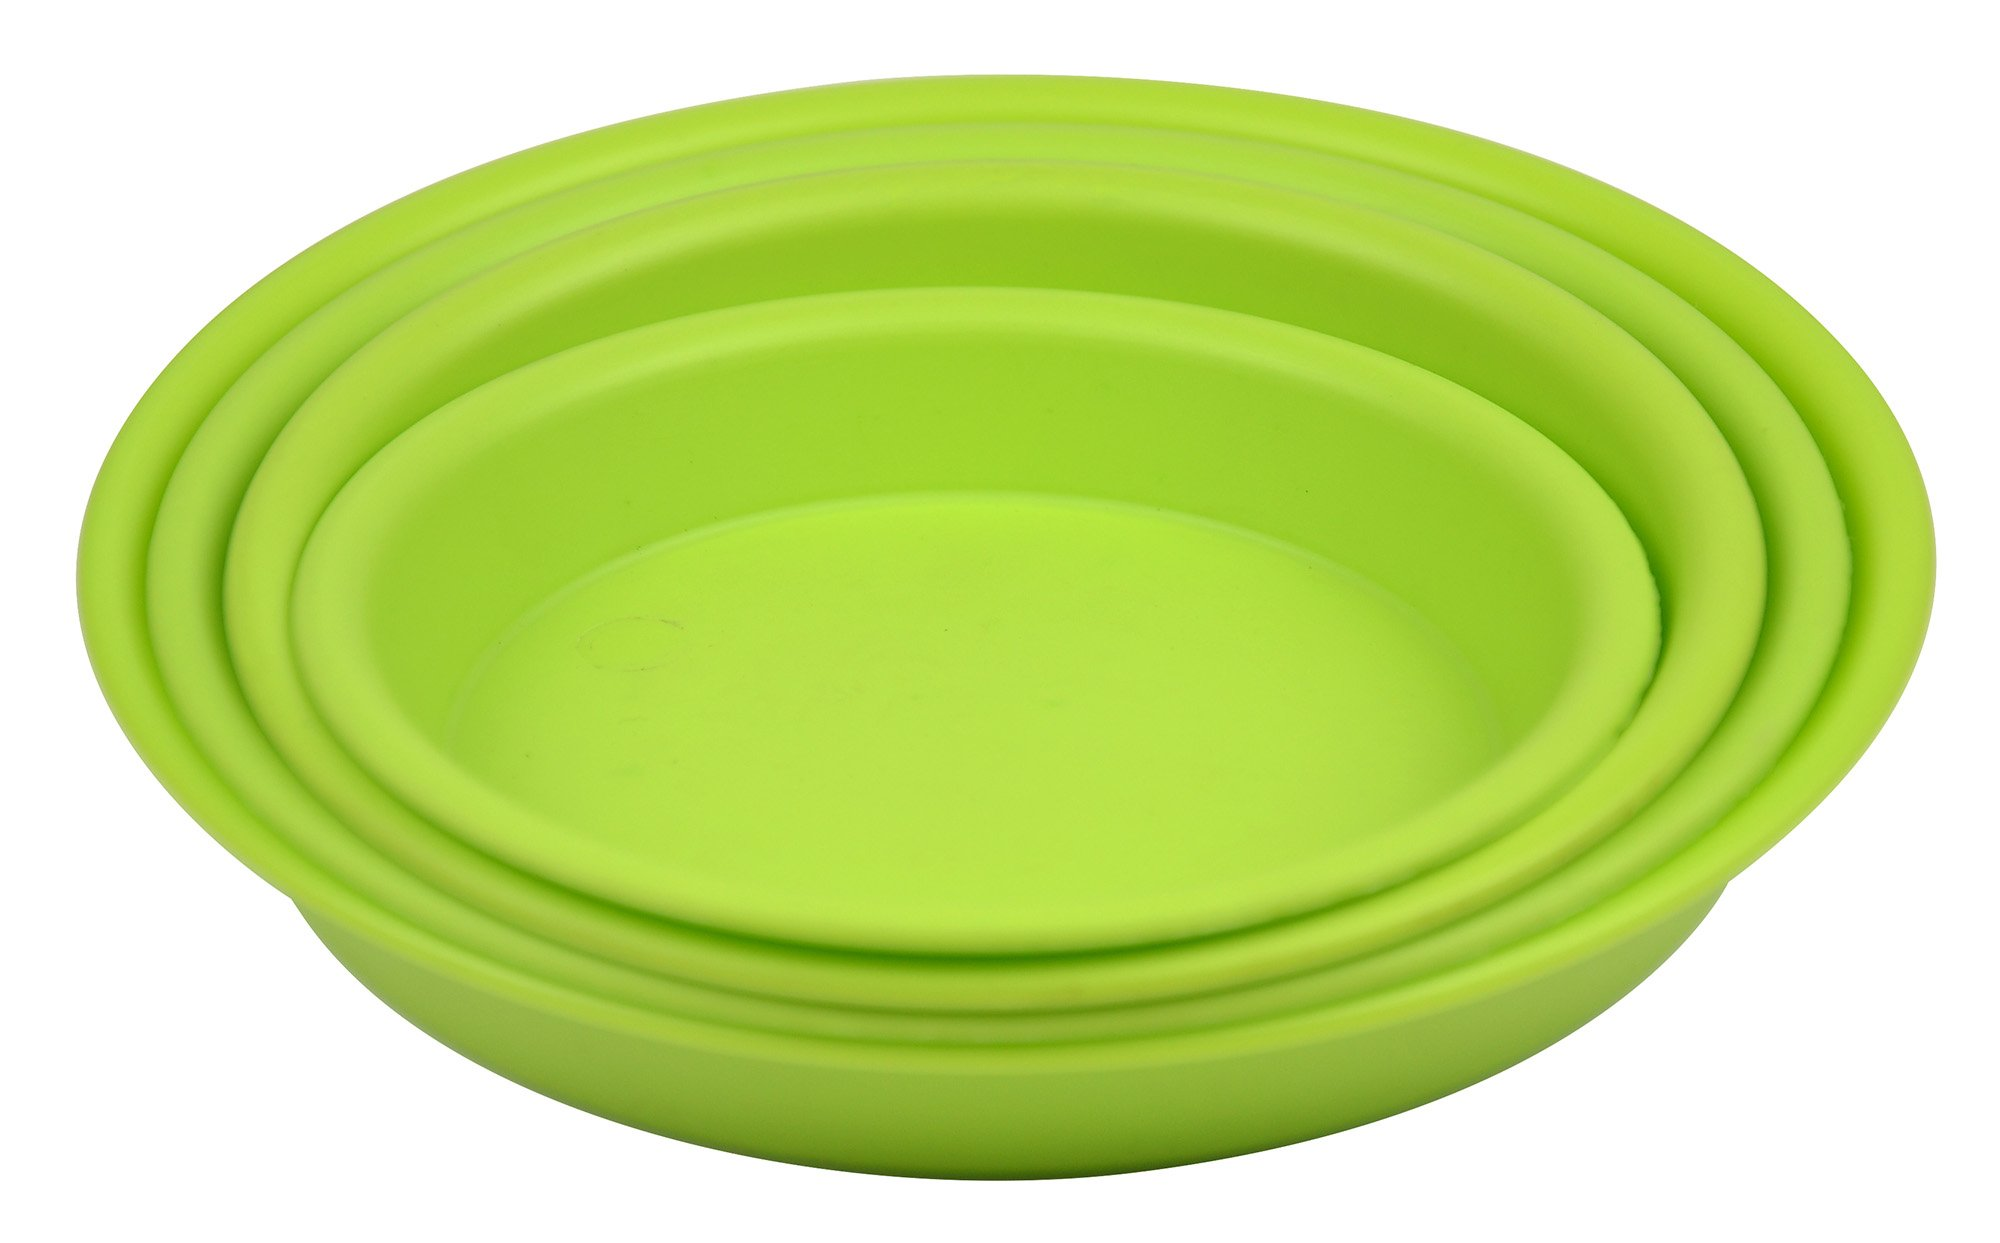 4.5'' Round Plant Saucer Planter Tray Pat Pallet for Flowerpot,Green,1200 Count